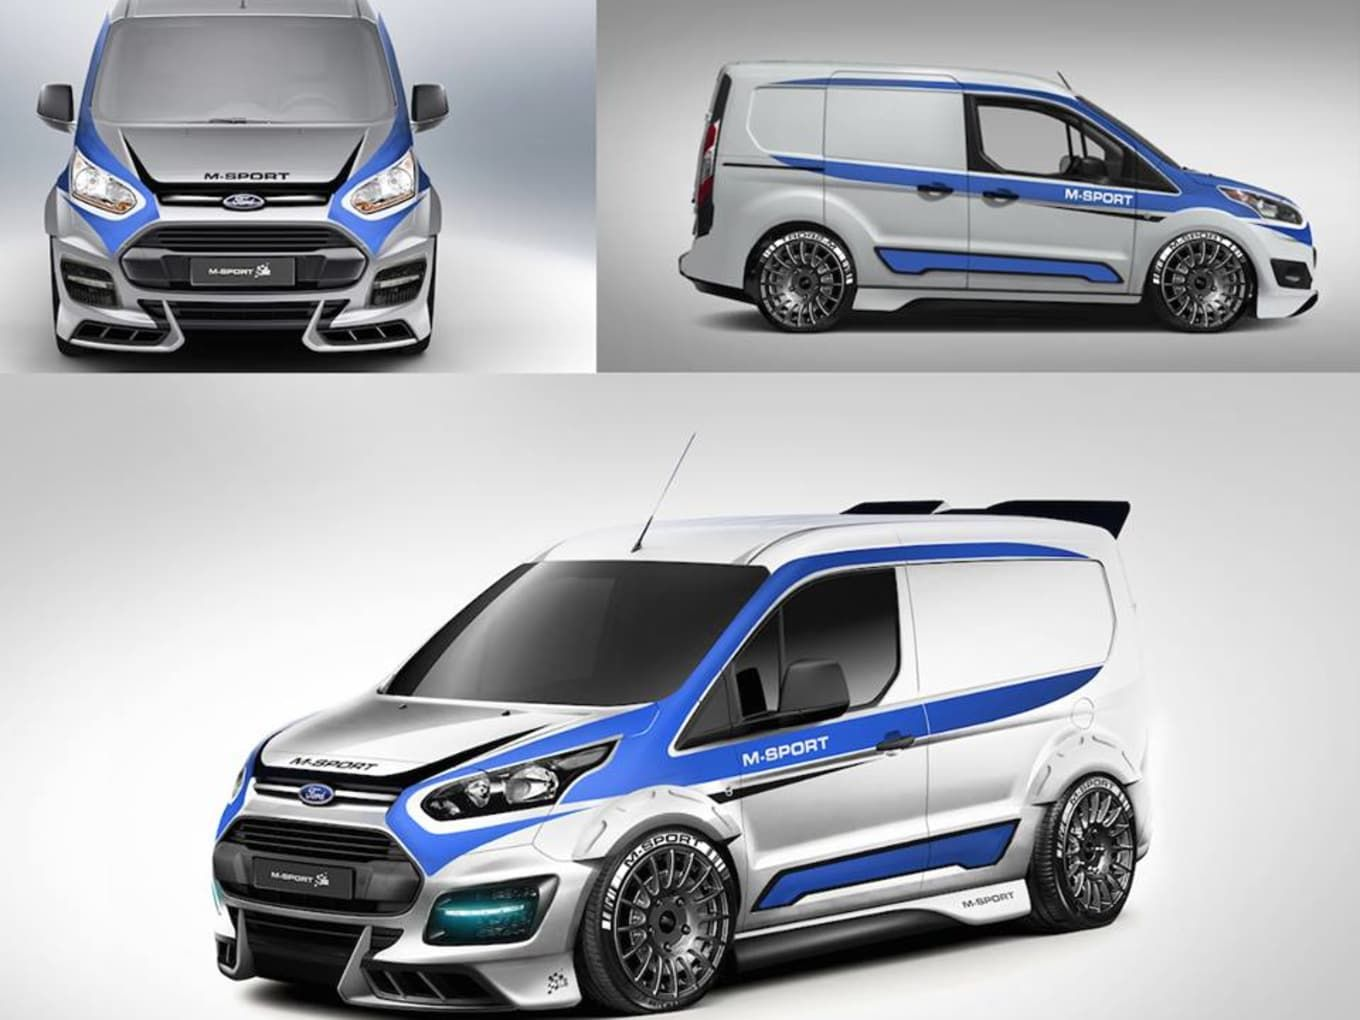 ford transit m sport connect across the uk hartwell vans rad pinterest ford transit ford and van